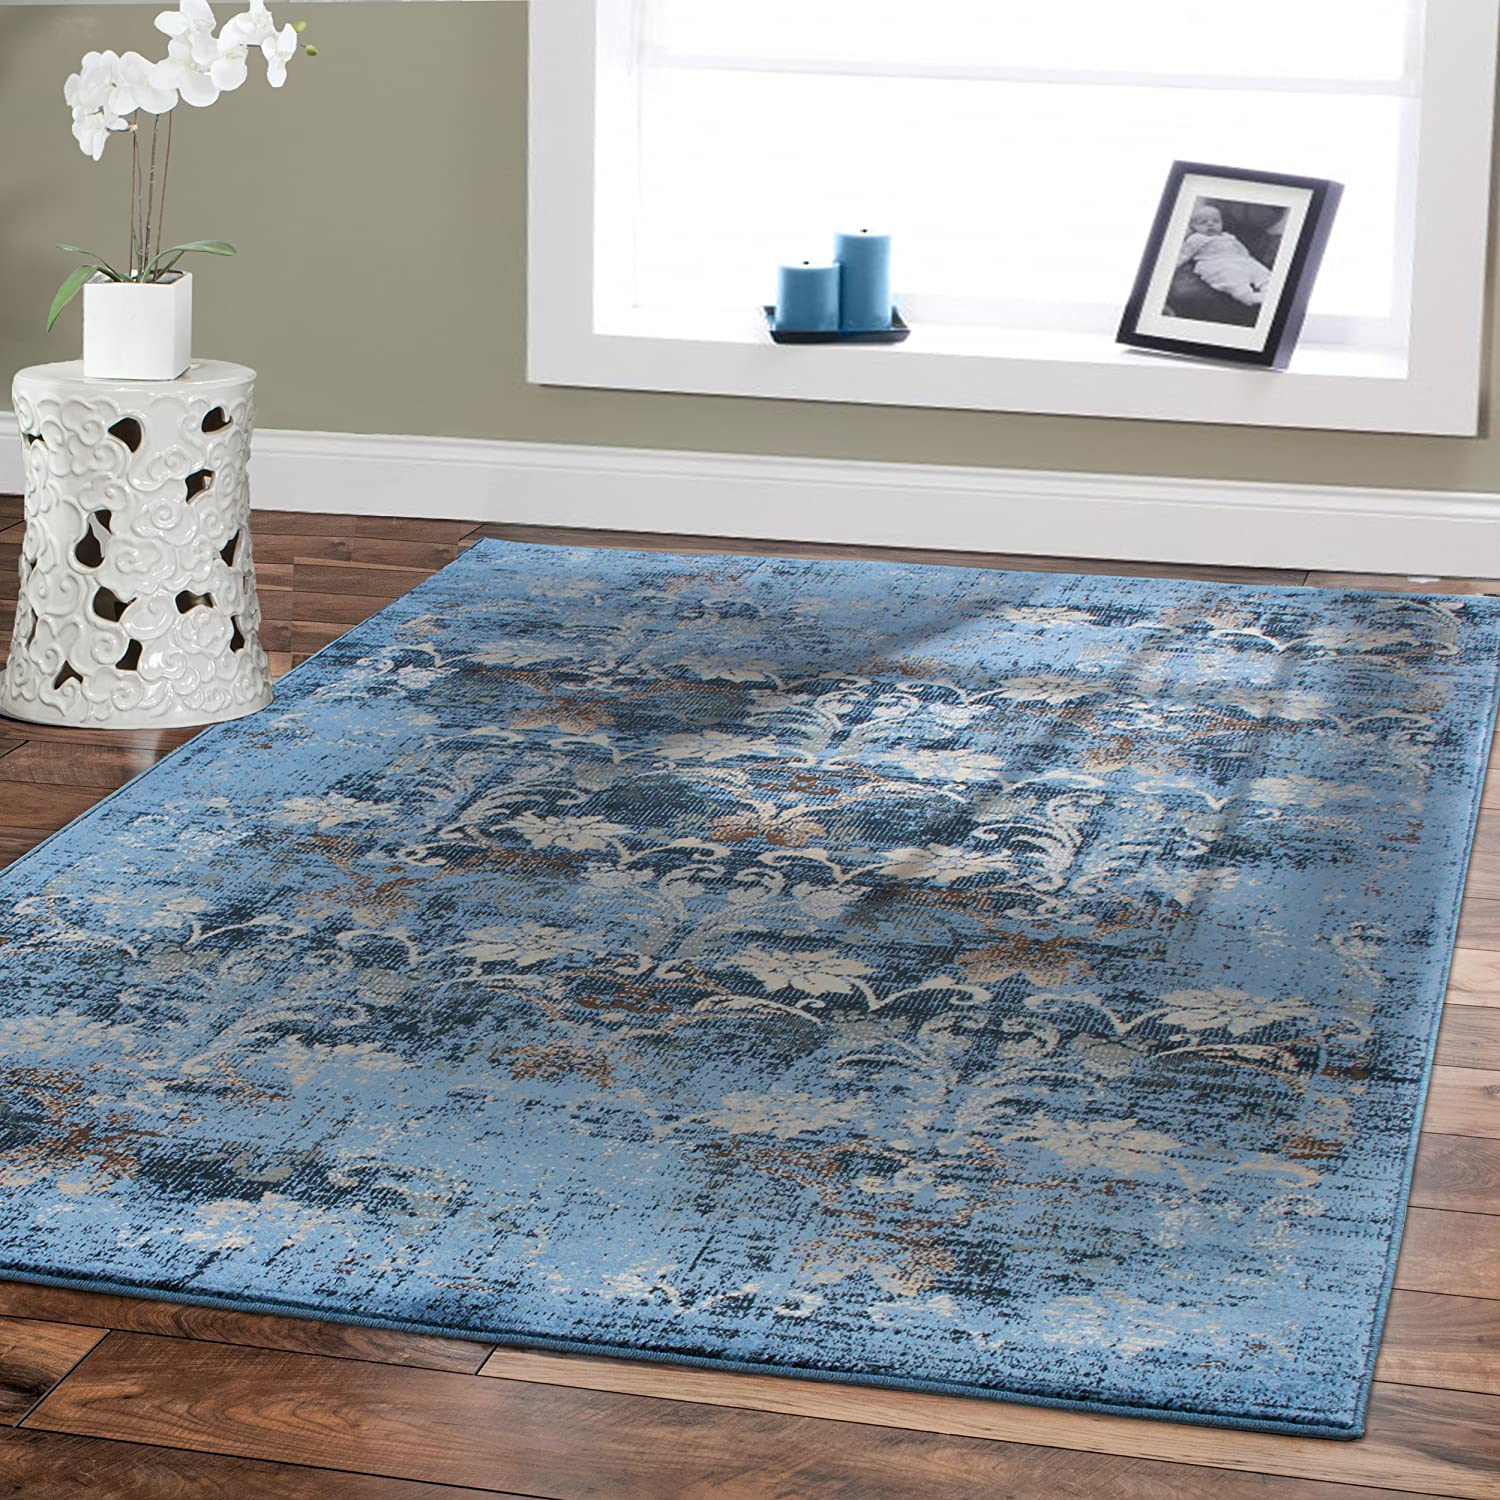 amazoncom premium soft x modern rugs for dining room blue rugs bluebeige brown ivory navy floral carpet rugs fashion x bedroom rugs liviongroom . amazoncom premium soft x modern rugs for dining room blue